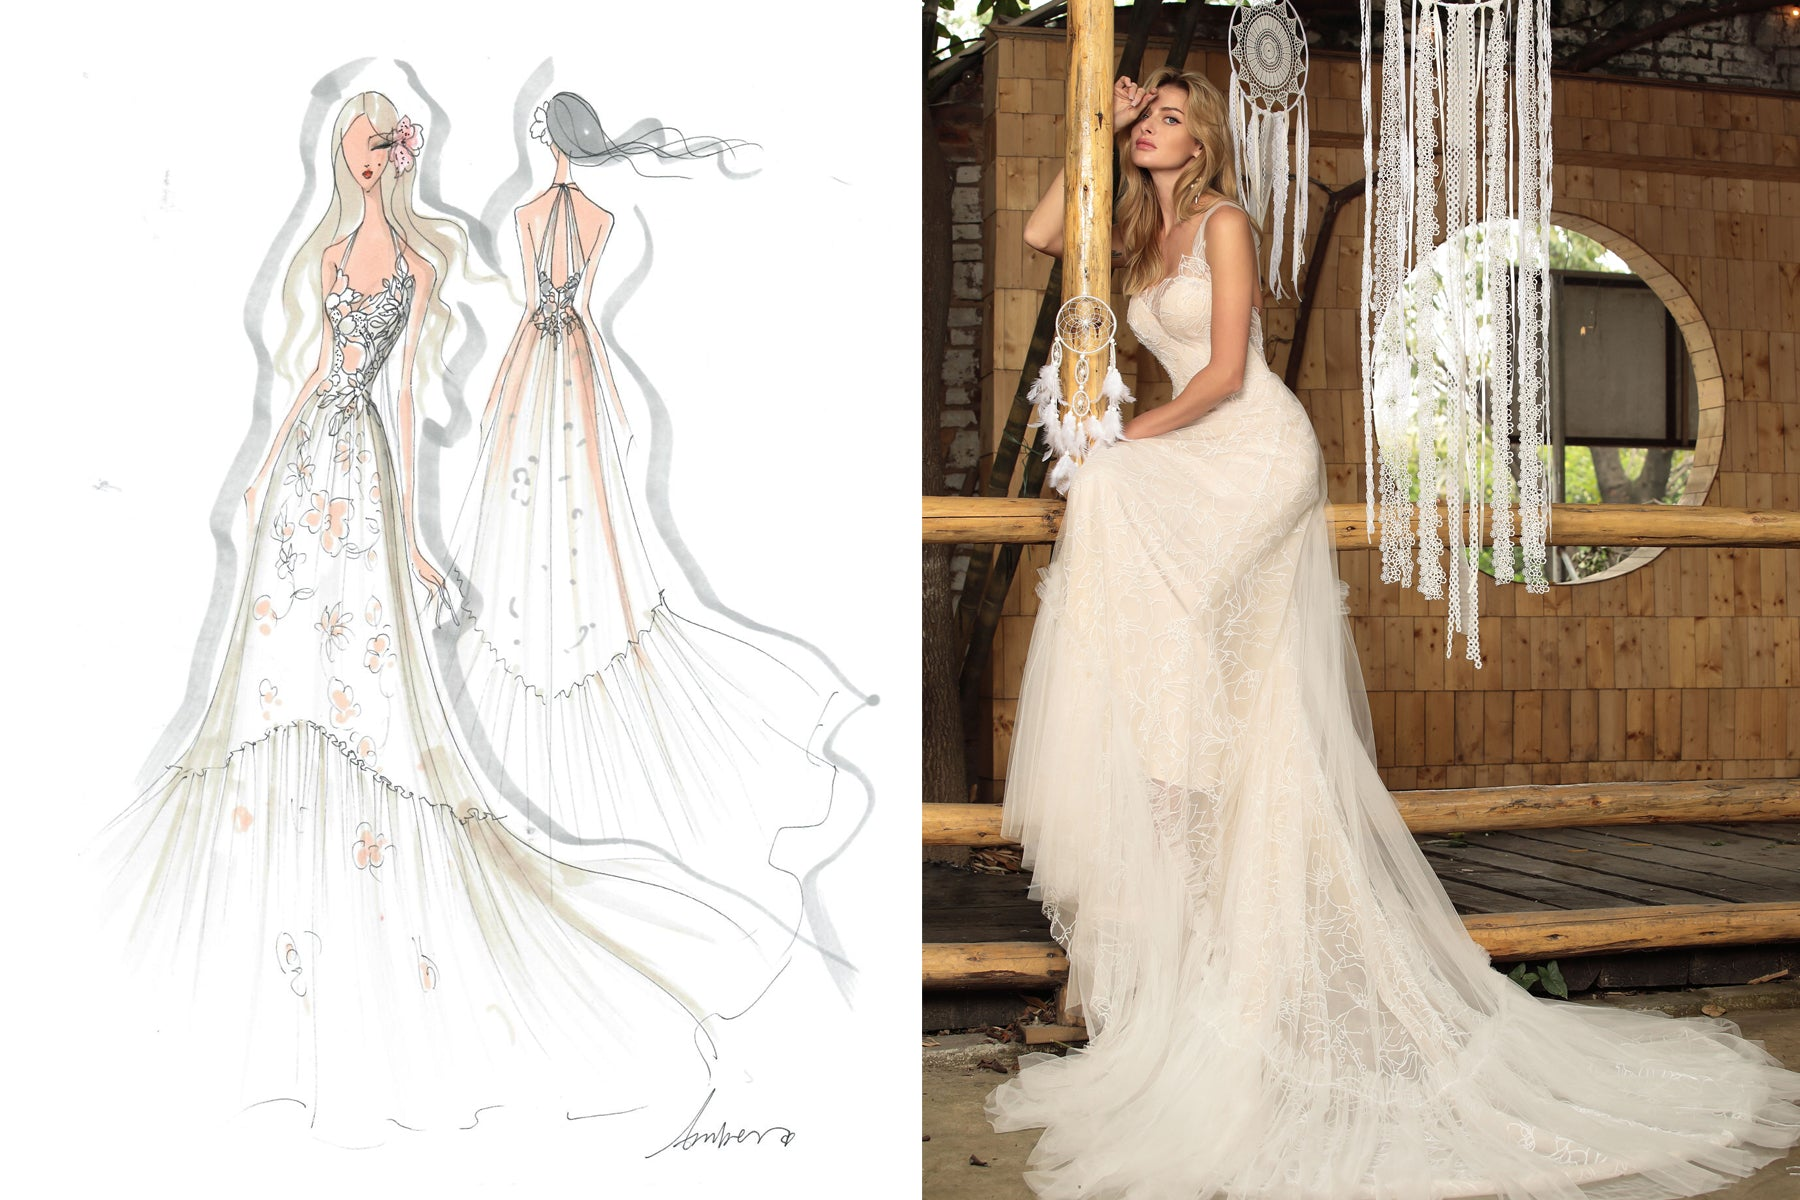 Eternal-bridal-wedding-dress-chic-nostalgia-mellow-collection-sophie